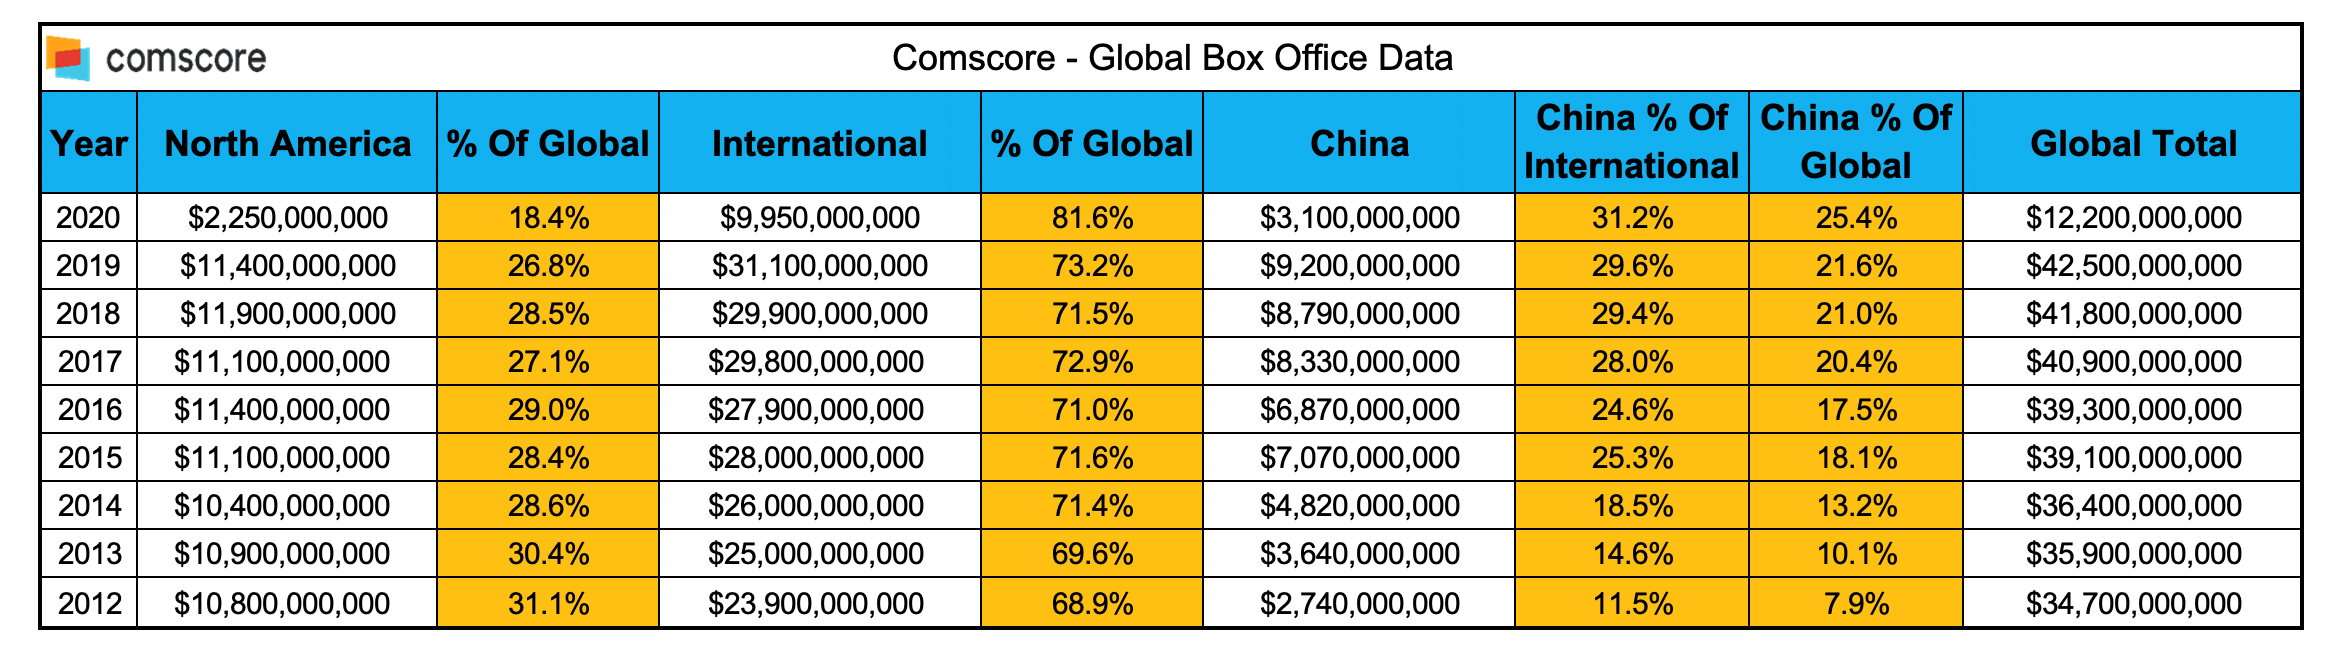 Comscore Global Box Office Data